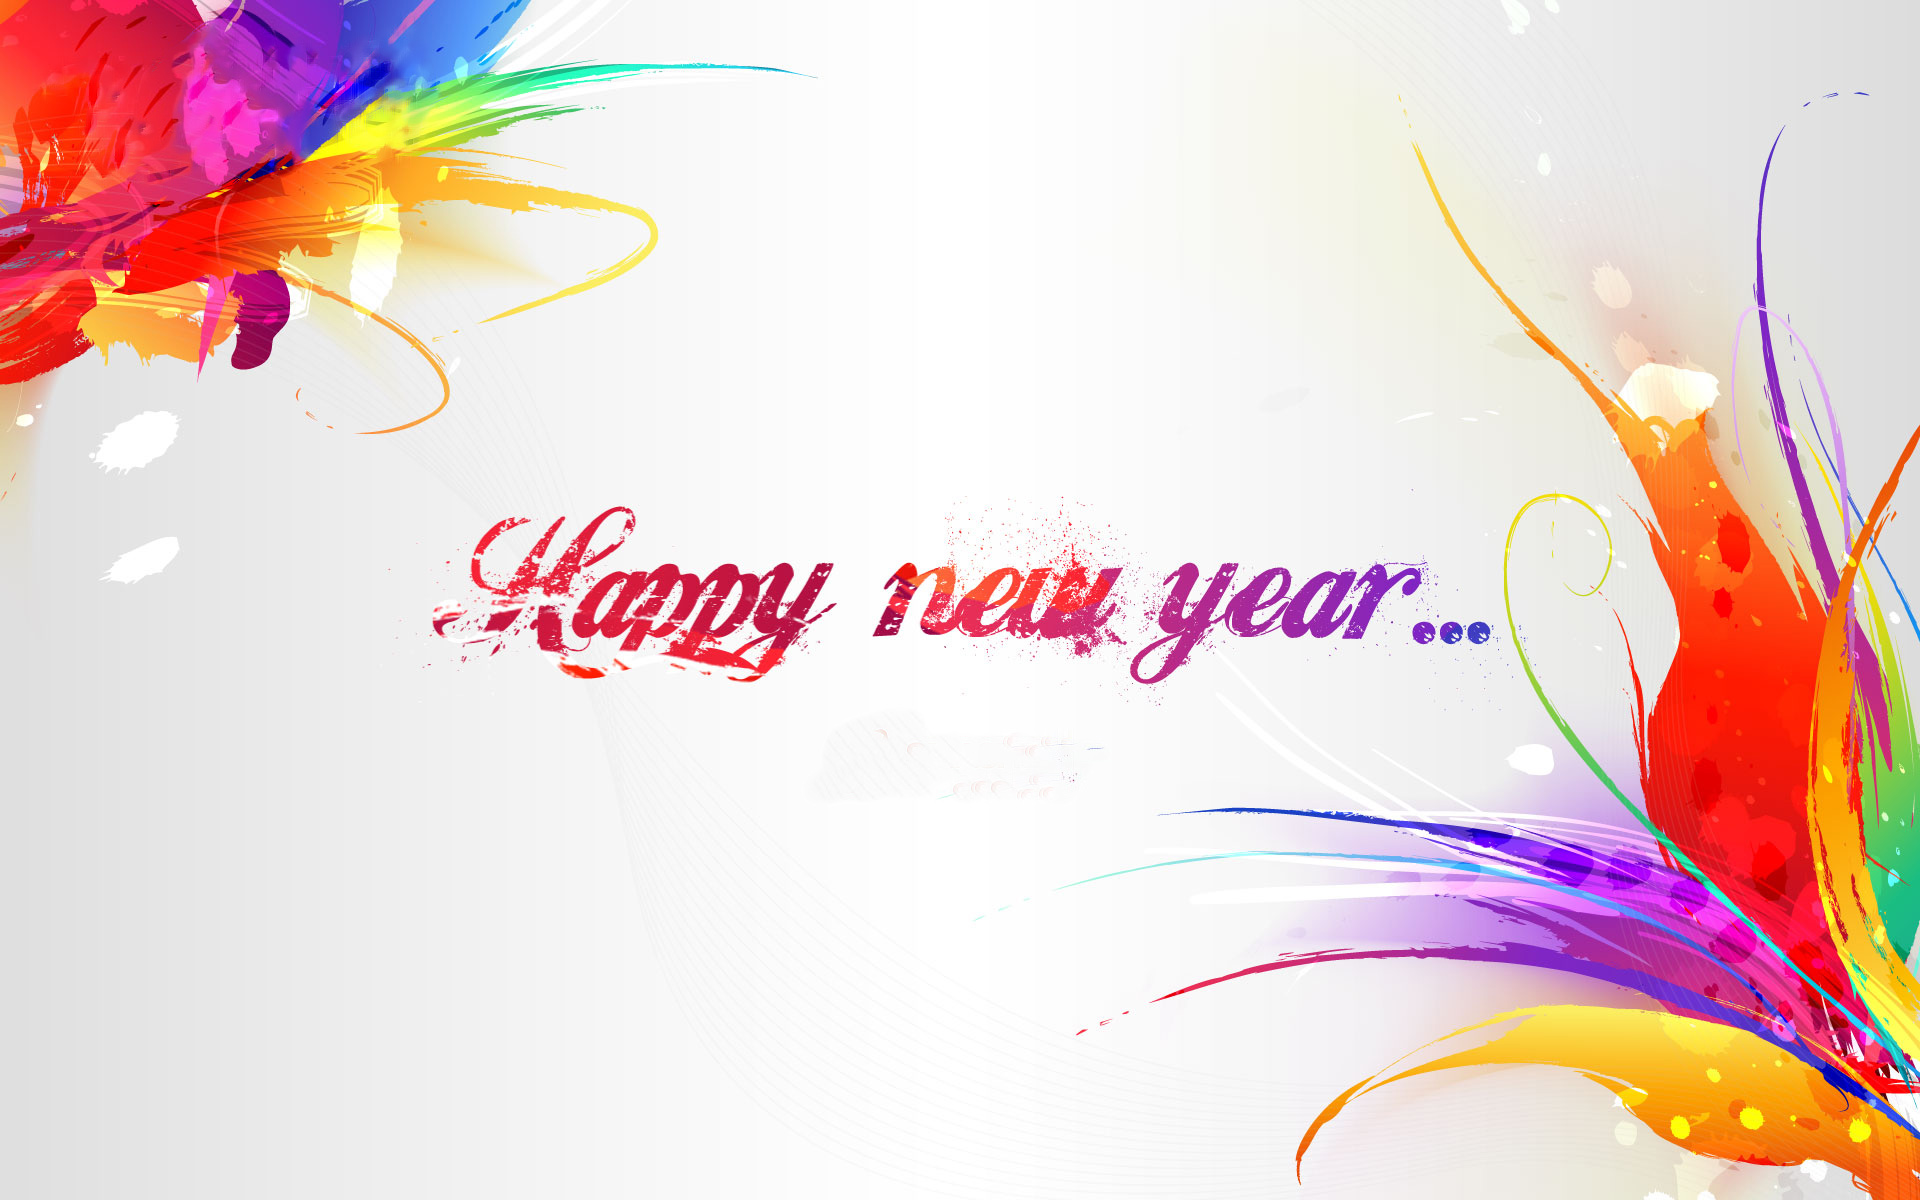 1920x1200-new-year-wallpaper.jpg